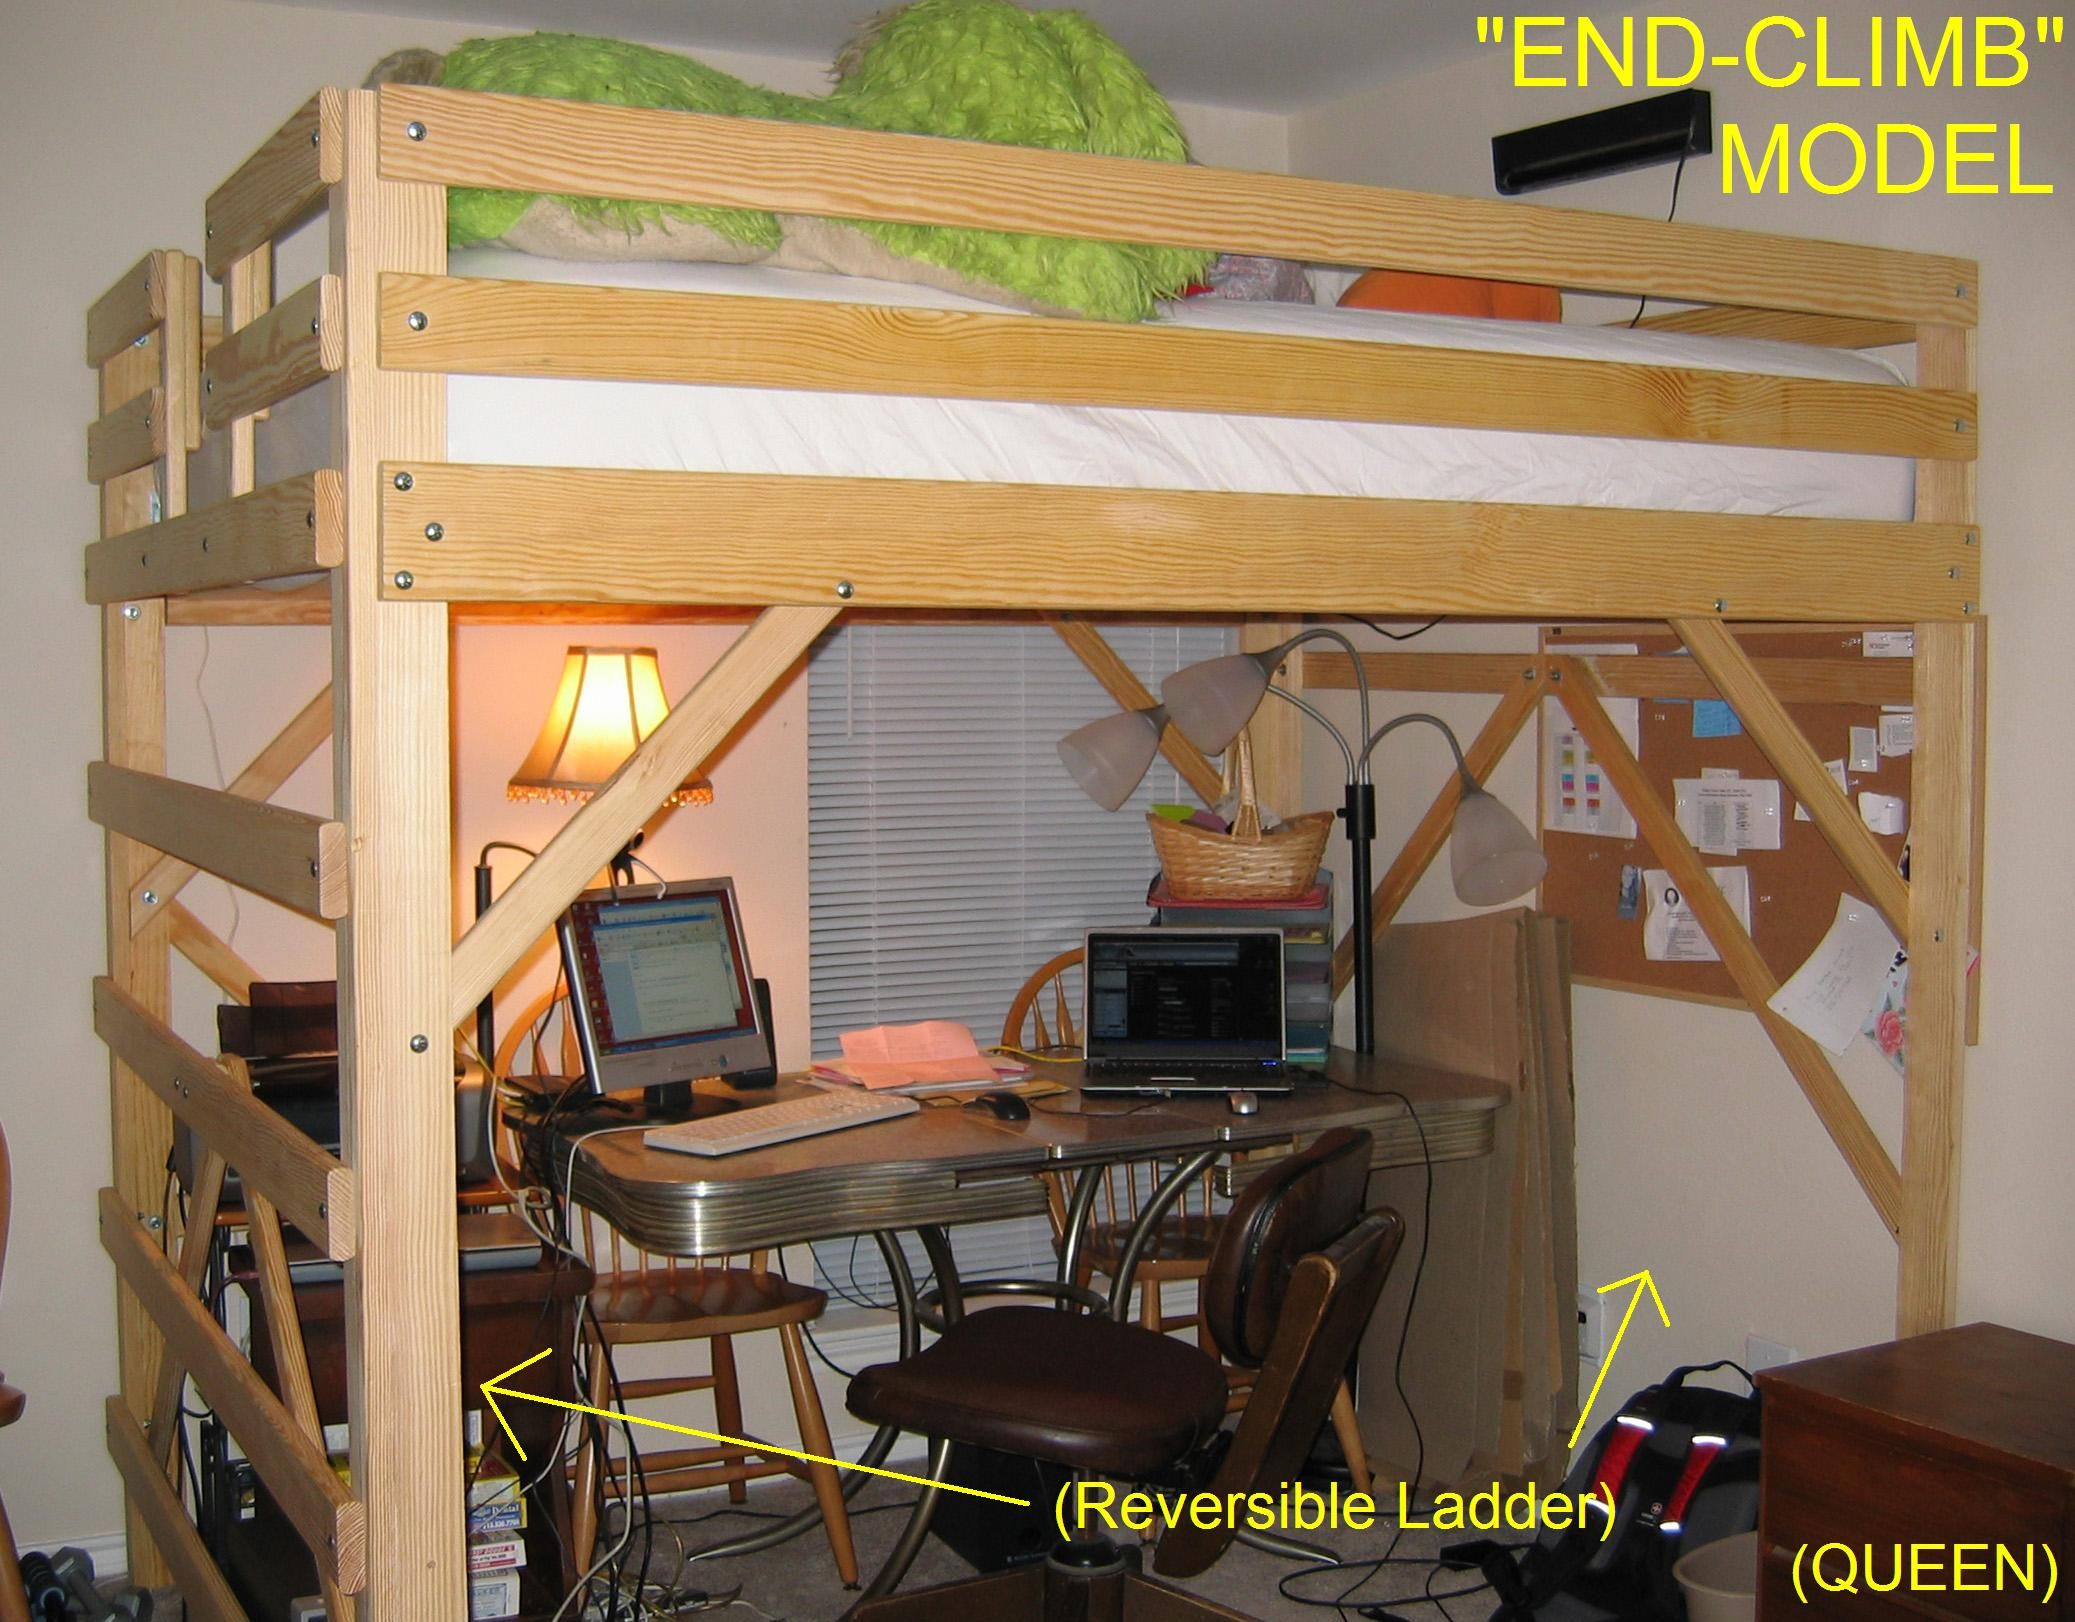 Loft Bed Designs By MC Woodworks: Twin, Full, Queen U0026 King Loft Beds | DIY  | Pinterest | Bed Design, Woodwork And Lofts